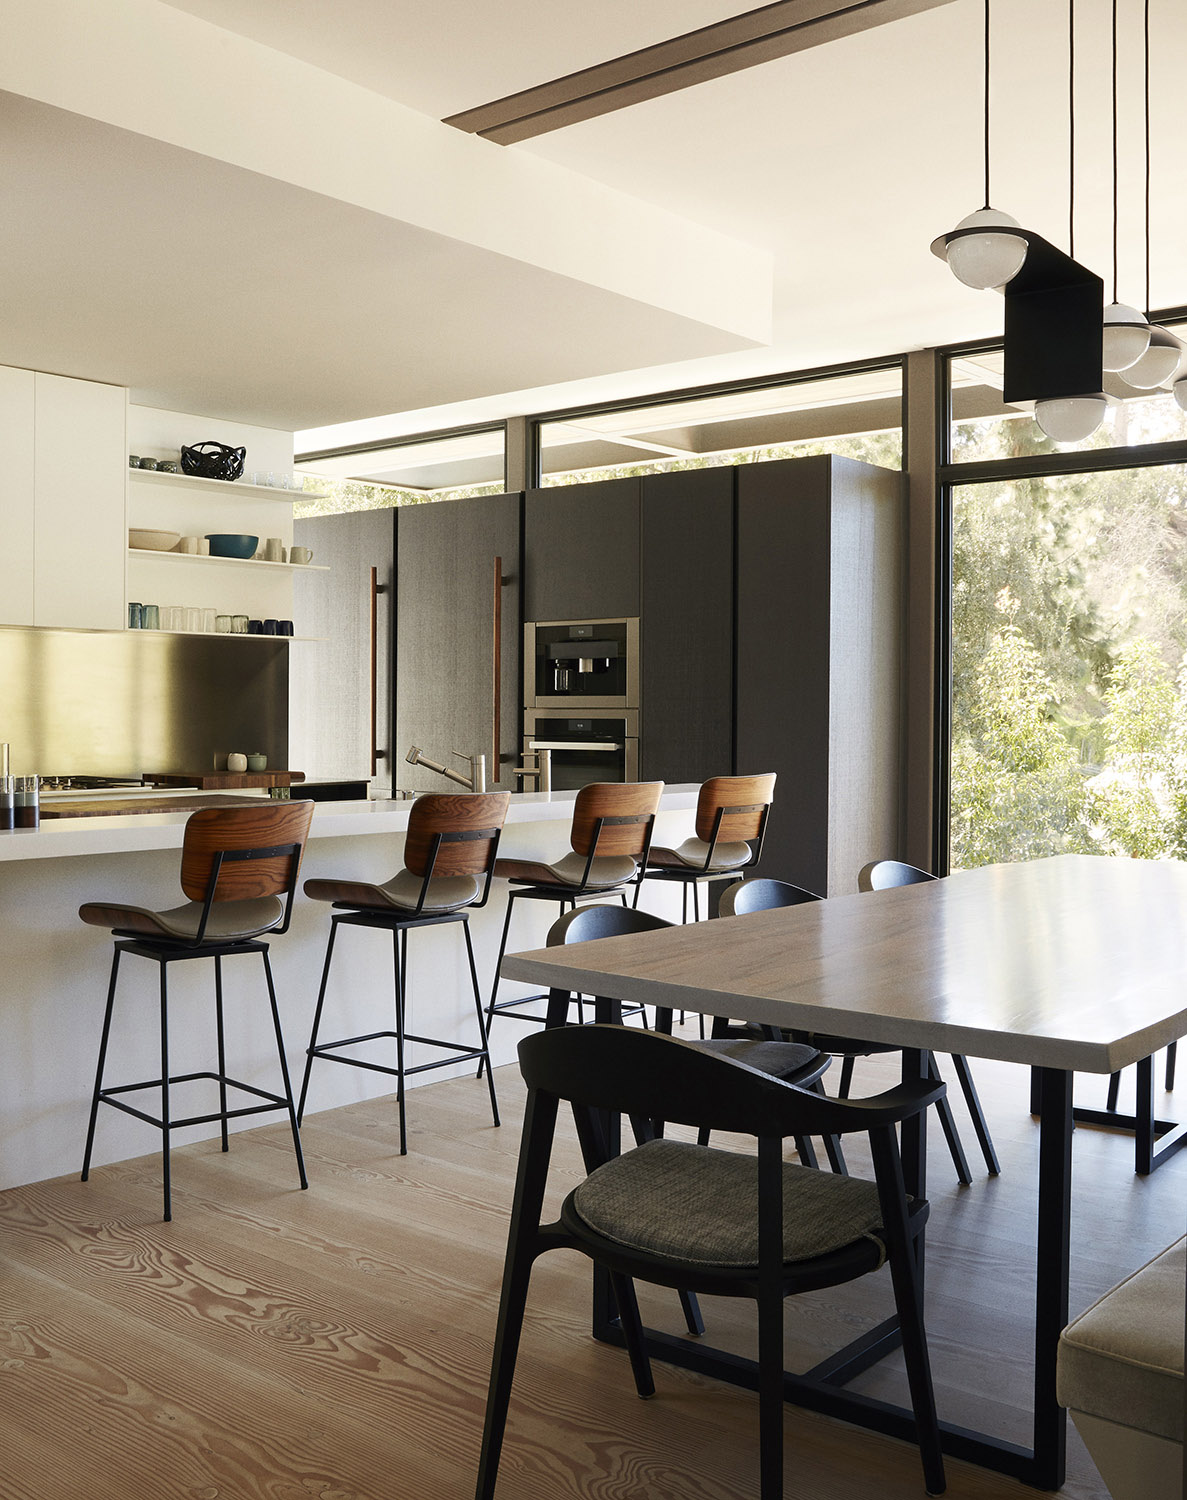 The kitchen's dark-stained oak millwork and Corian-and-steel countertops were made by Ernestomeda. Miller Mobley